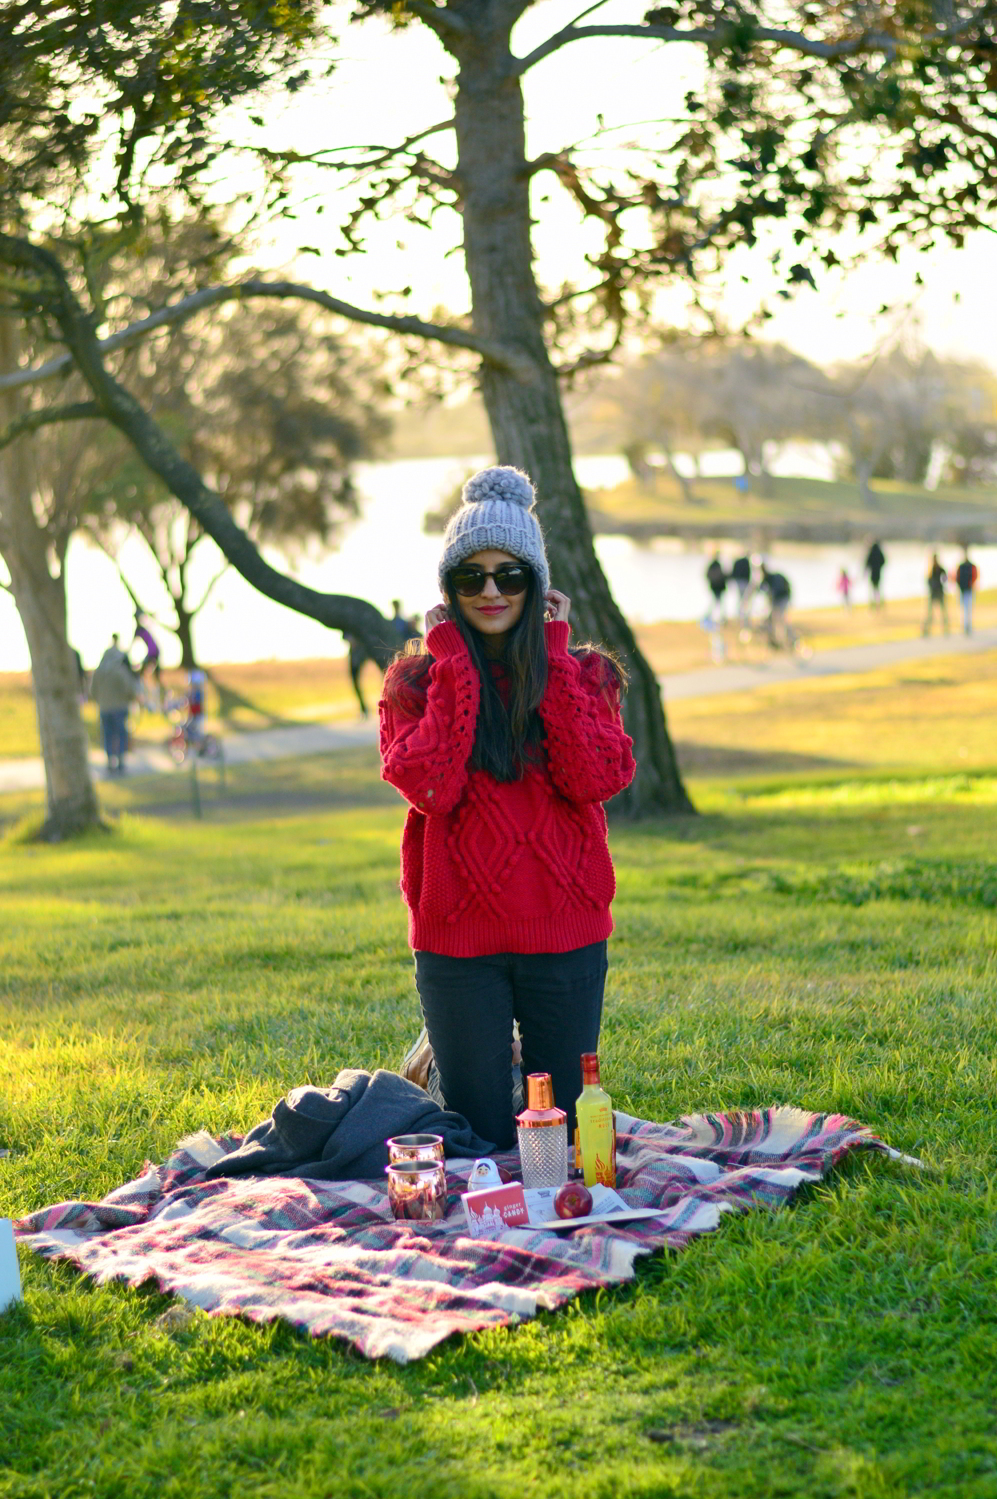 valentines-day-picnic-park-winter-outfit-style-blogger-moscow-mules-subscription-service 7